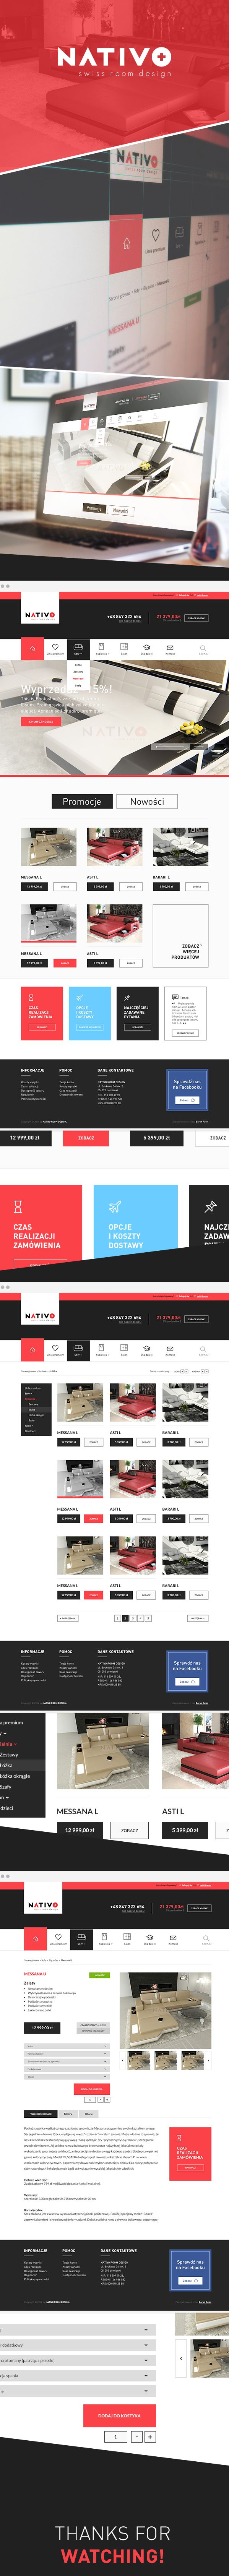 NATIVO - furniture store by Rafał Baran, via Behance